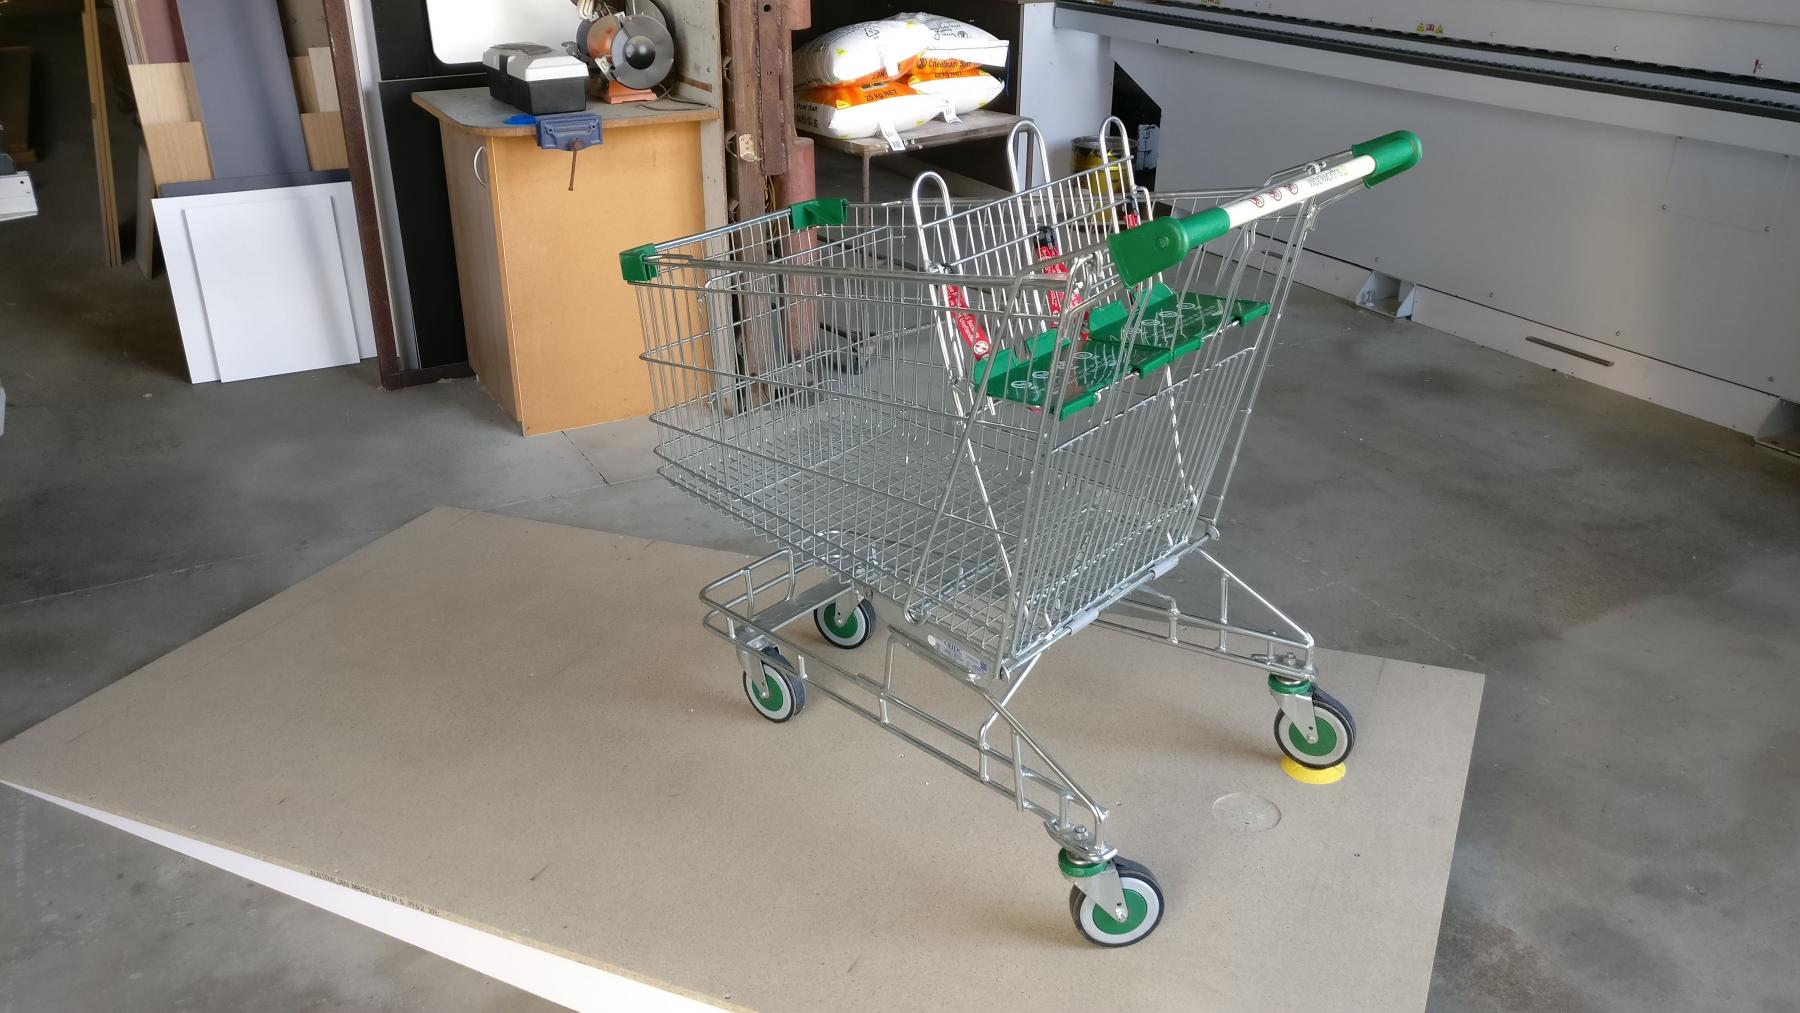 Trolley in Jig with no weight